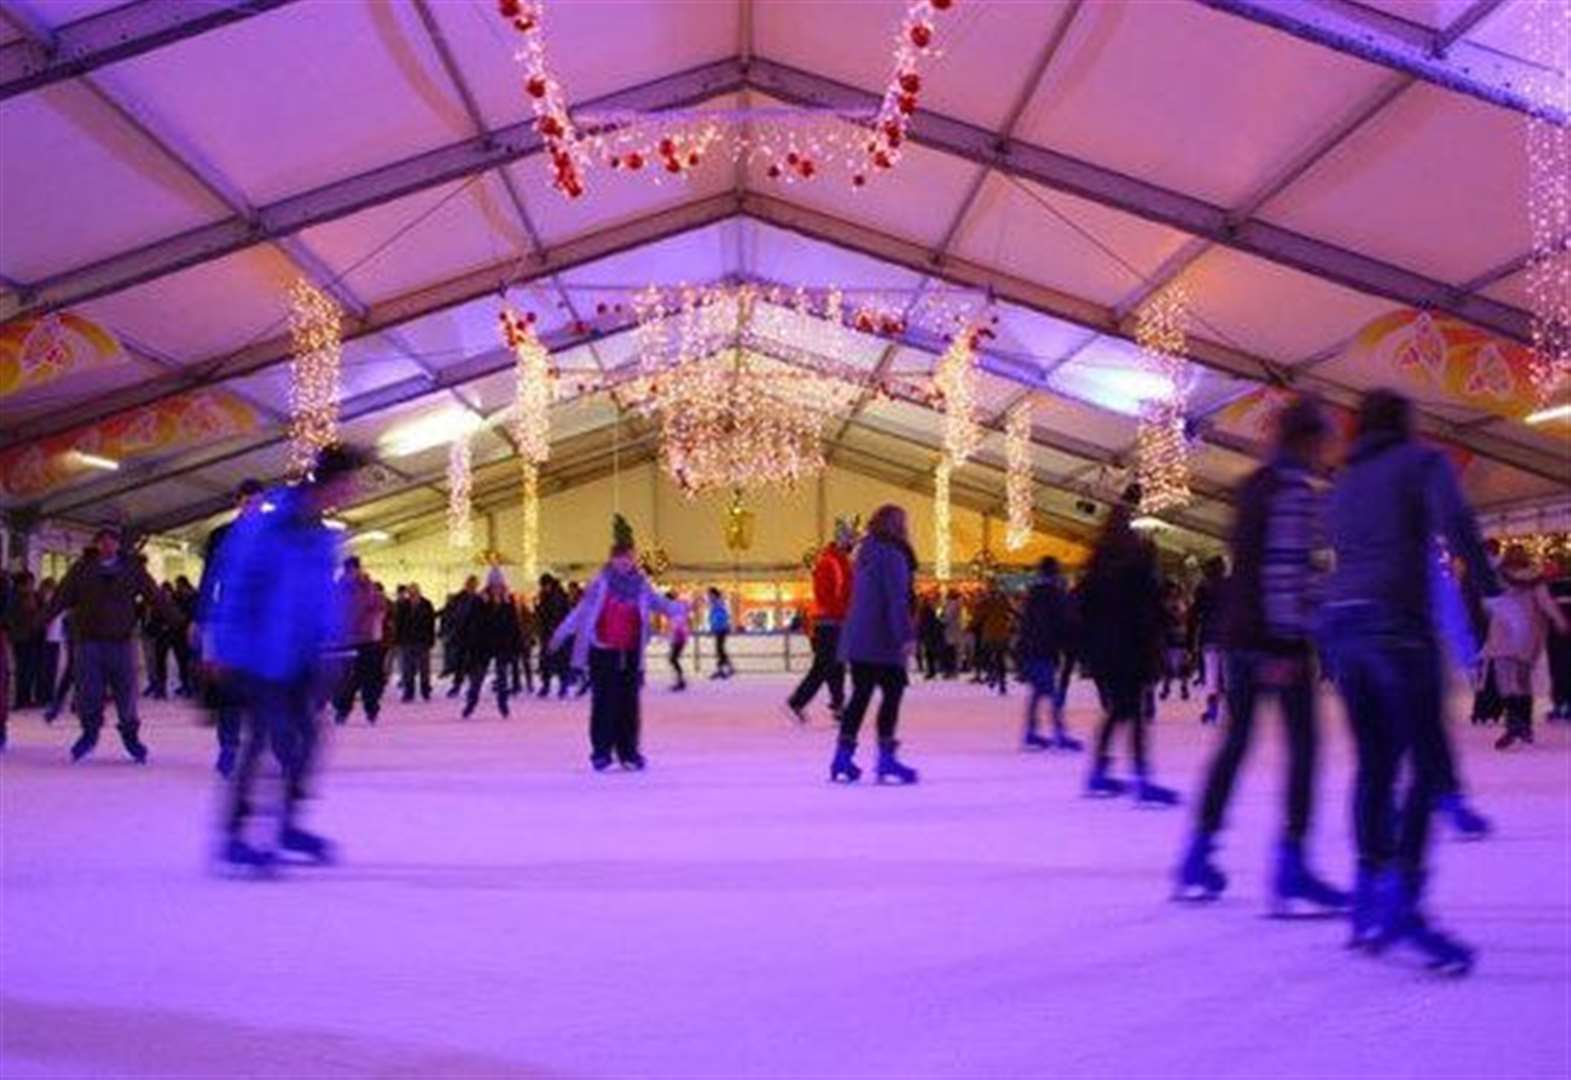 Ice rink confirmed for Christmas